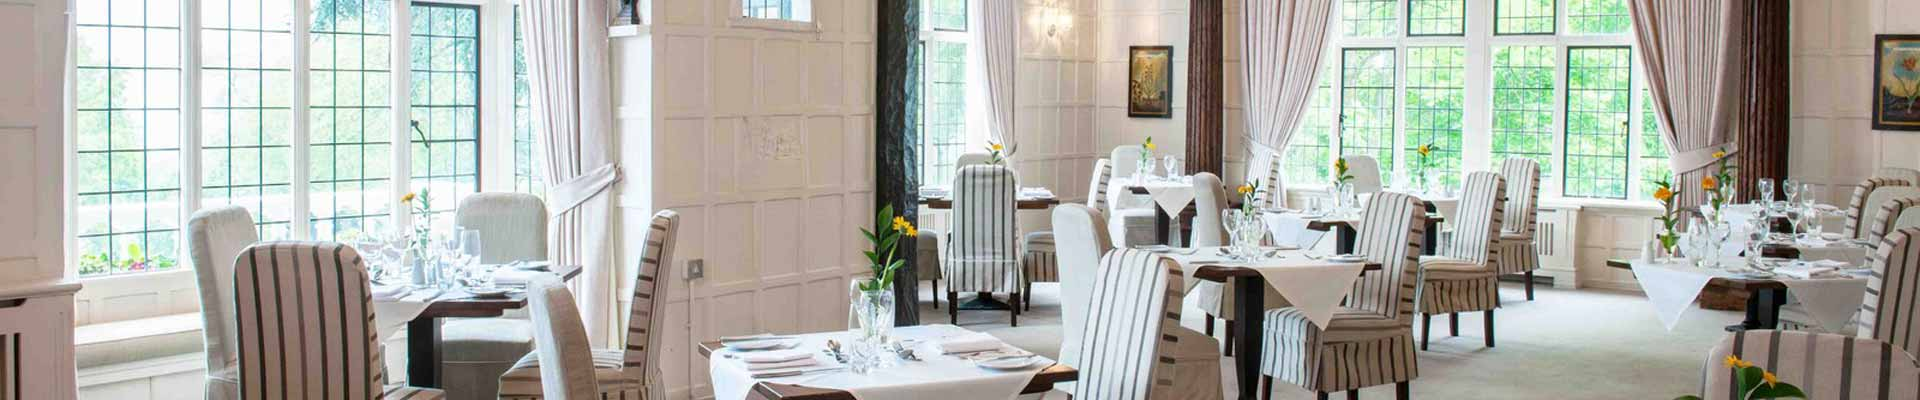 Photo of one of the dining rooms at The Manor Elstree